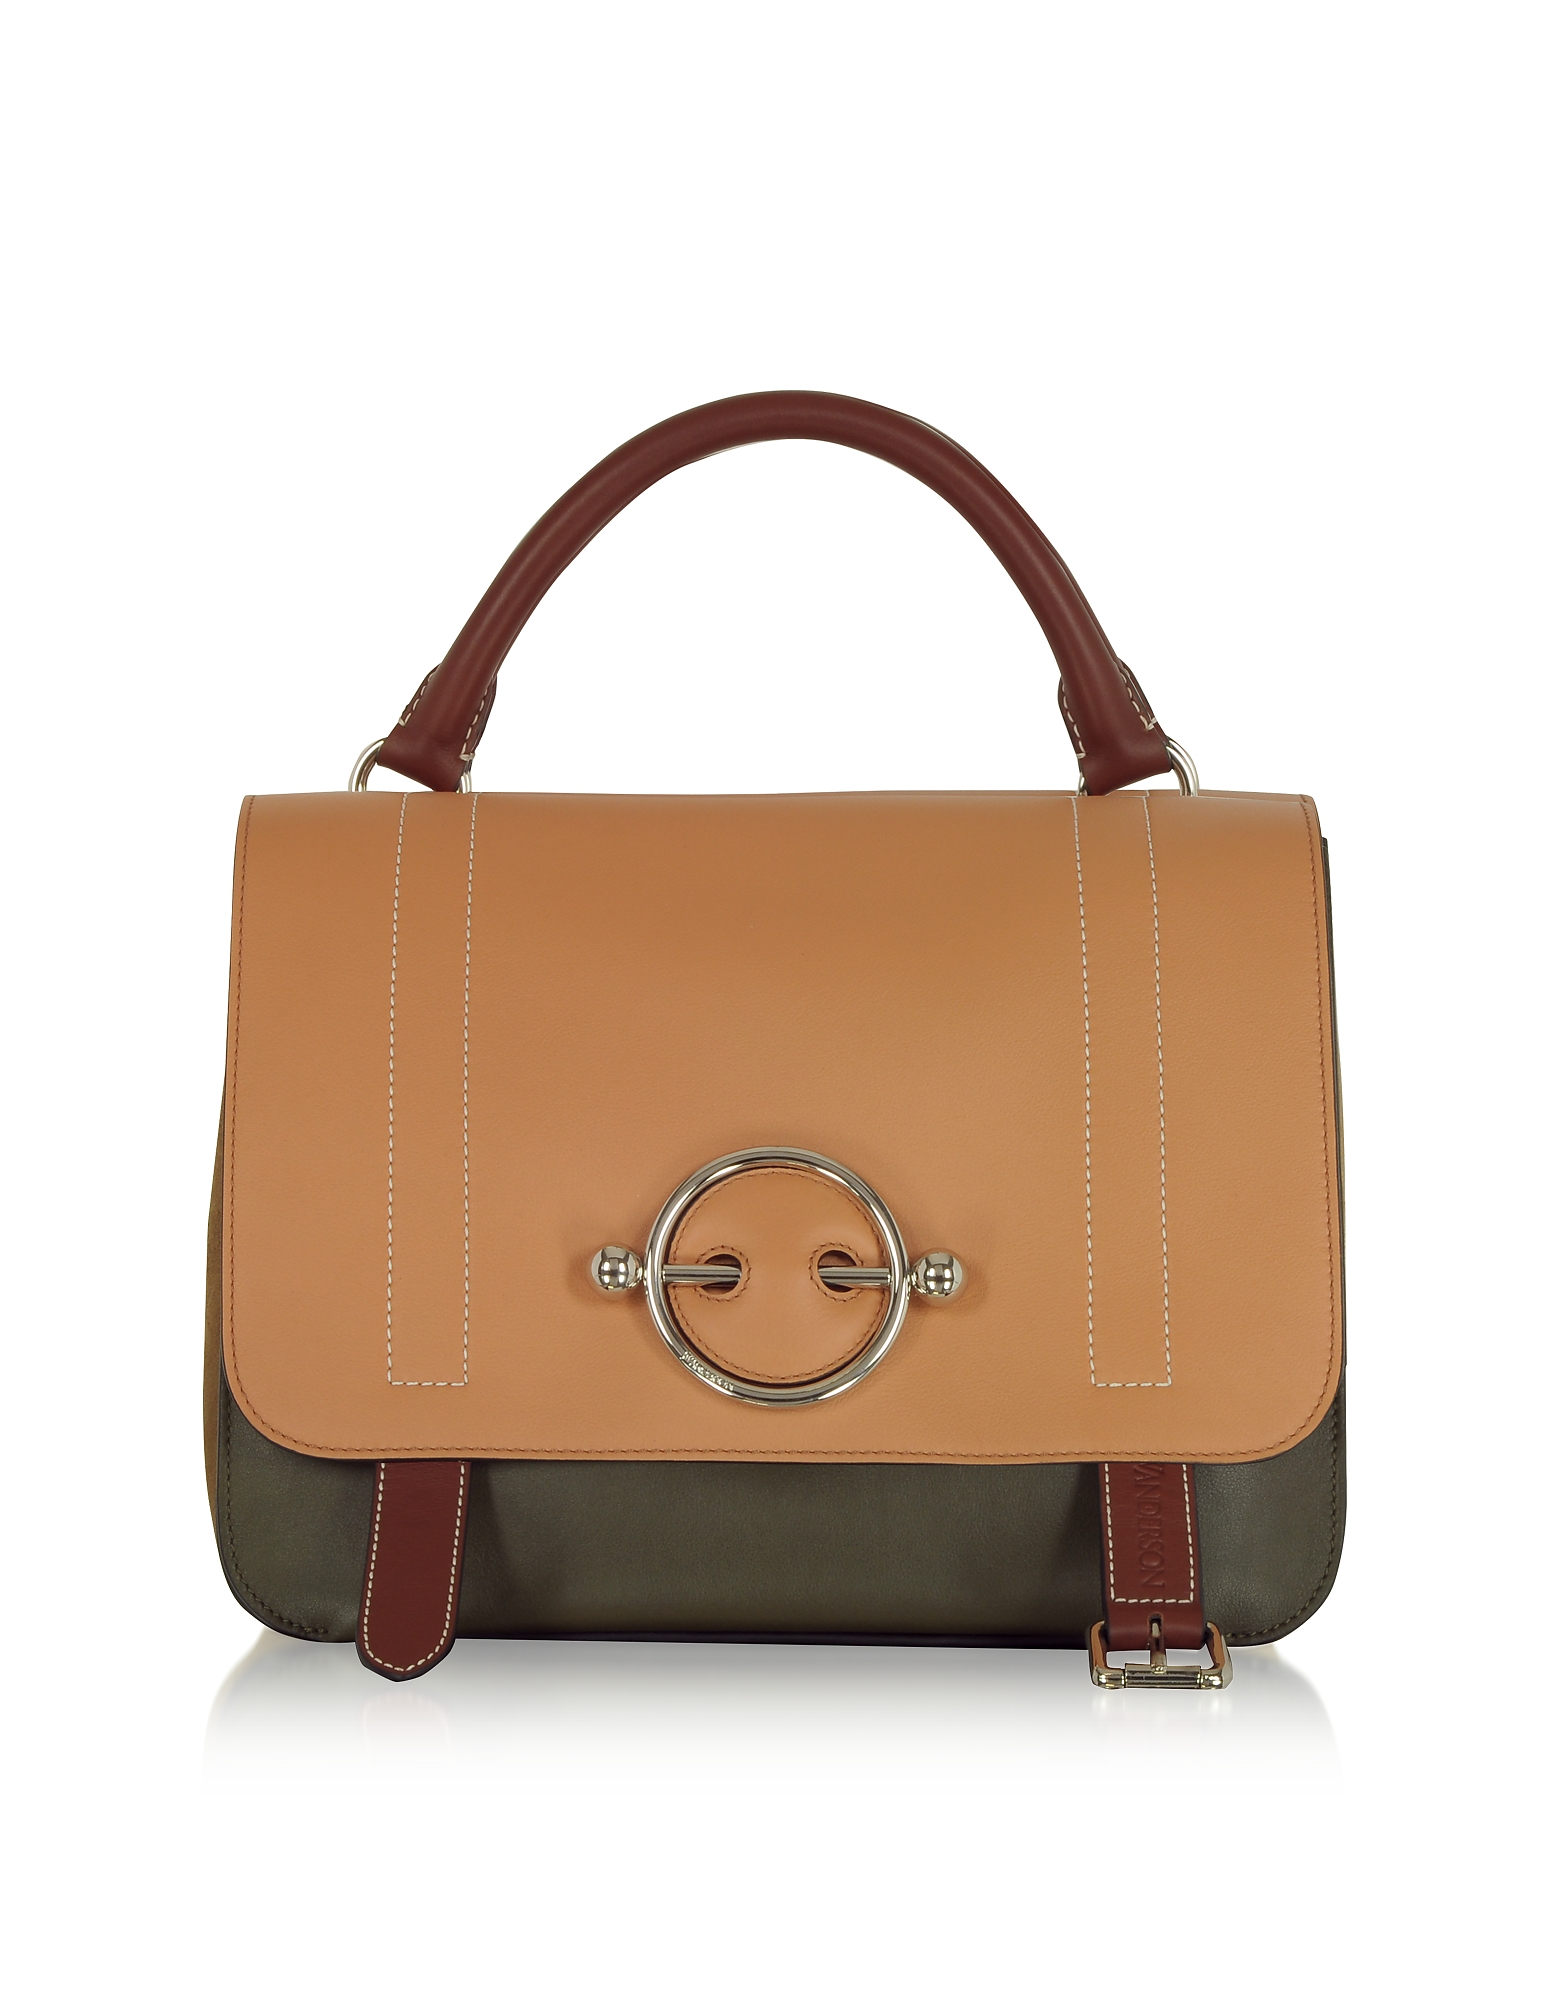 Image of JW Anderson Designer Handbags, Chestnut Leather Disc Satchel Bag